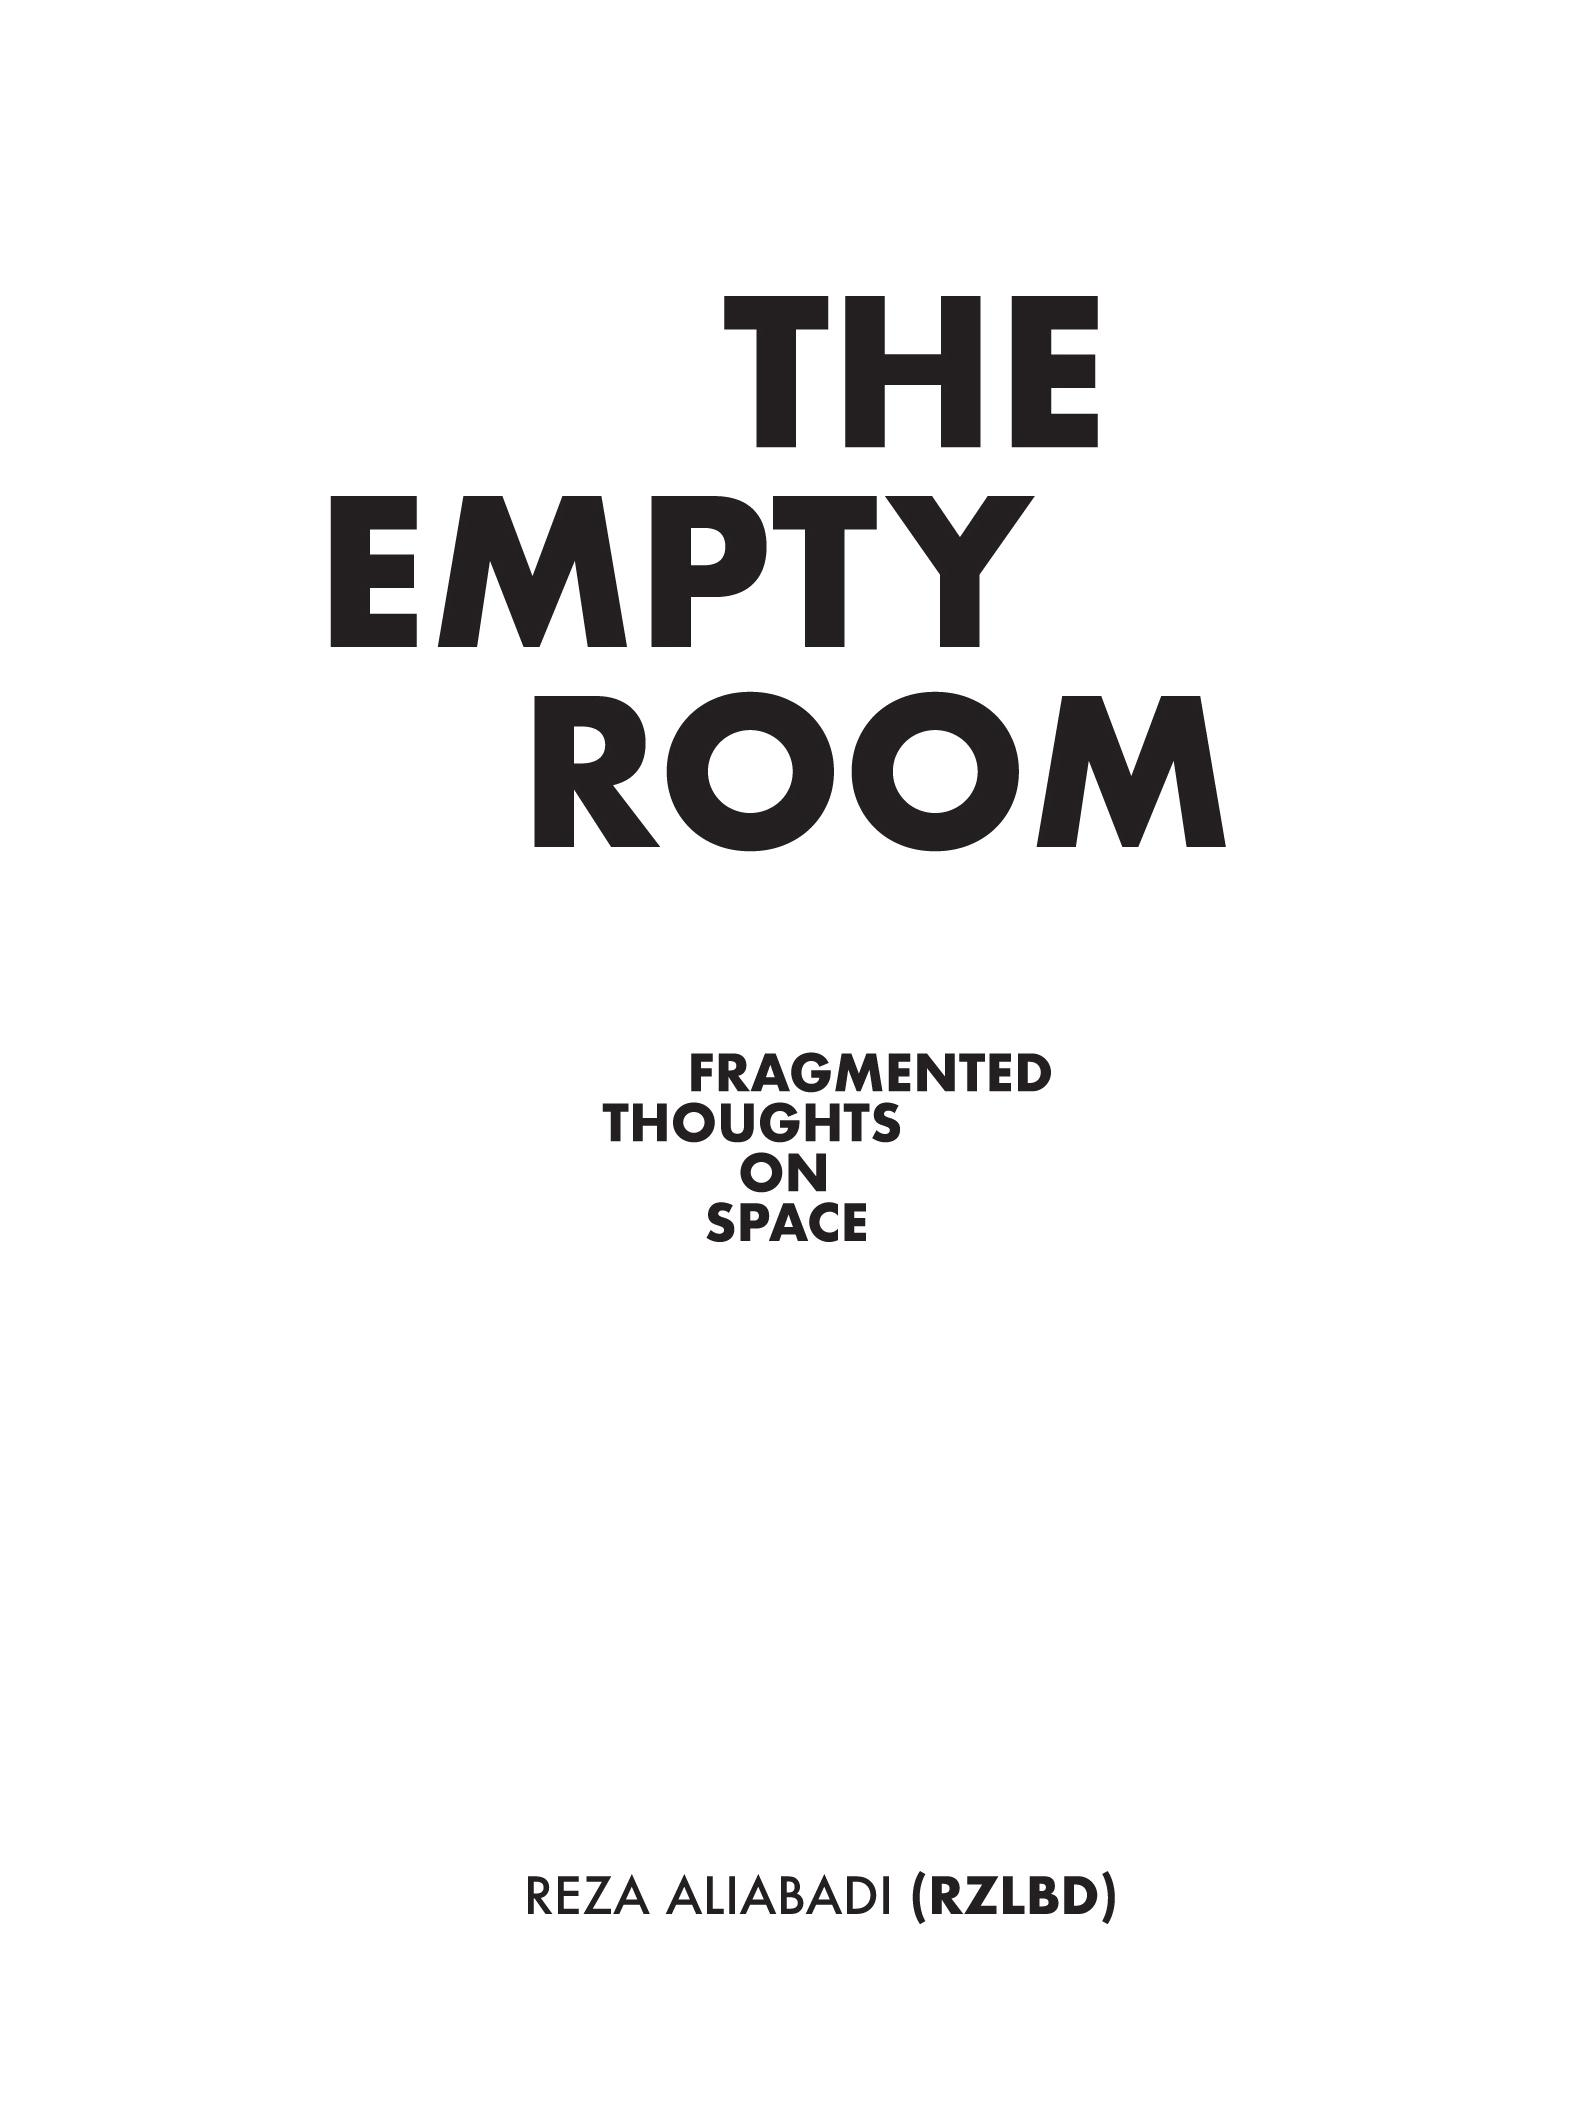 "THE EMPTY ROOM ""FRAGMENTED THOUGHTS ON SPACE"""